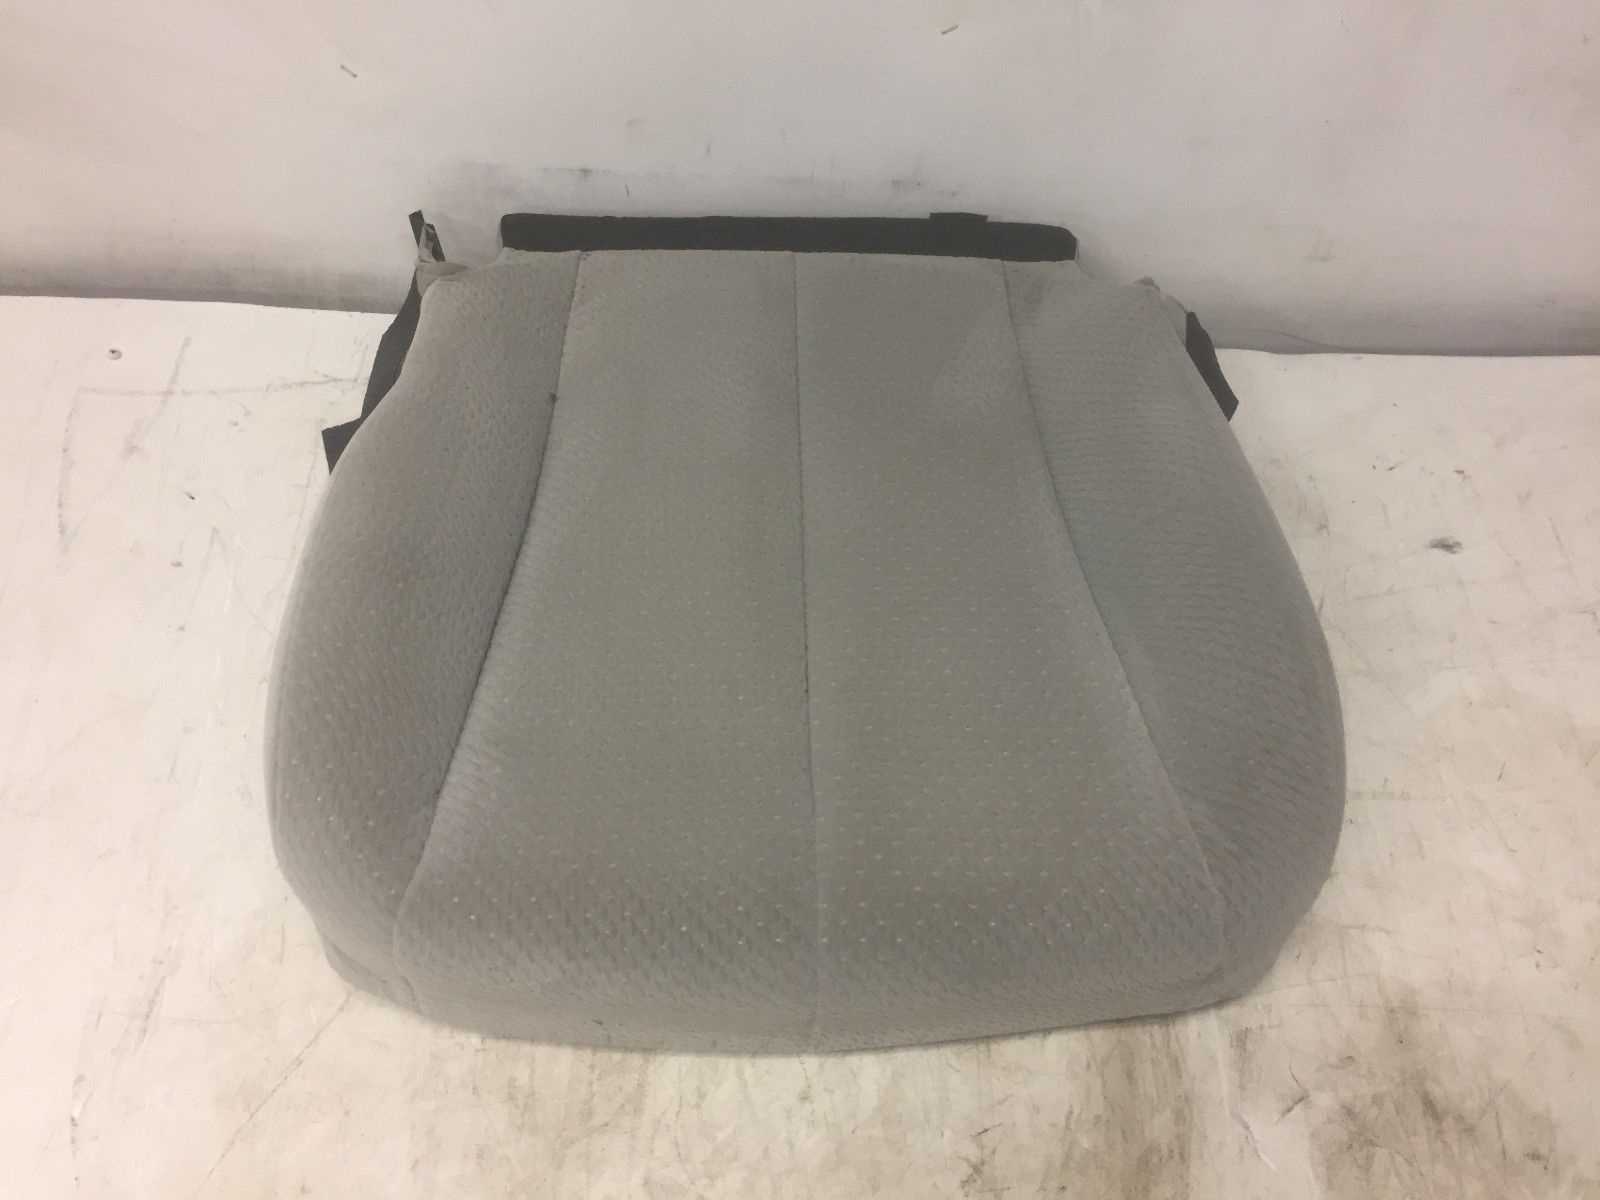 2013 Toyota Sienna Front Left Driver Said Lower Cover Grey Seat